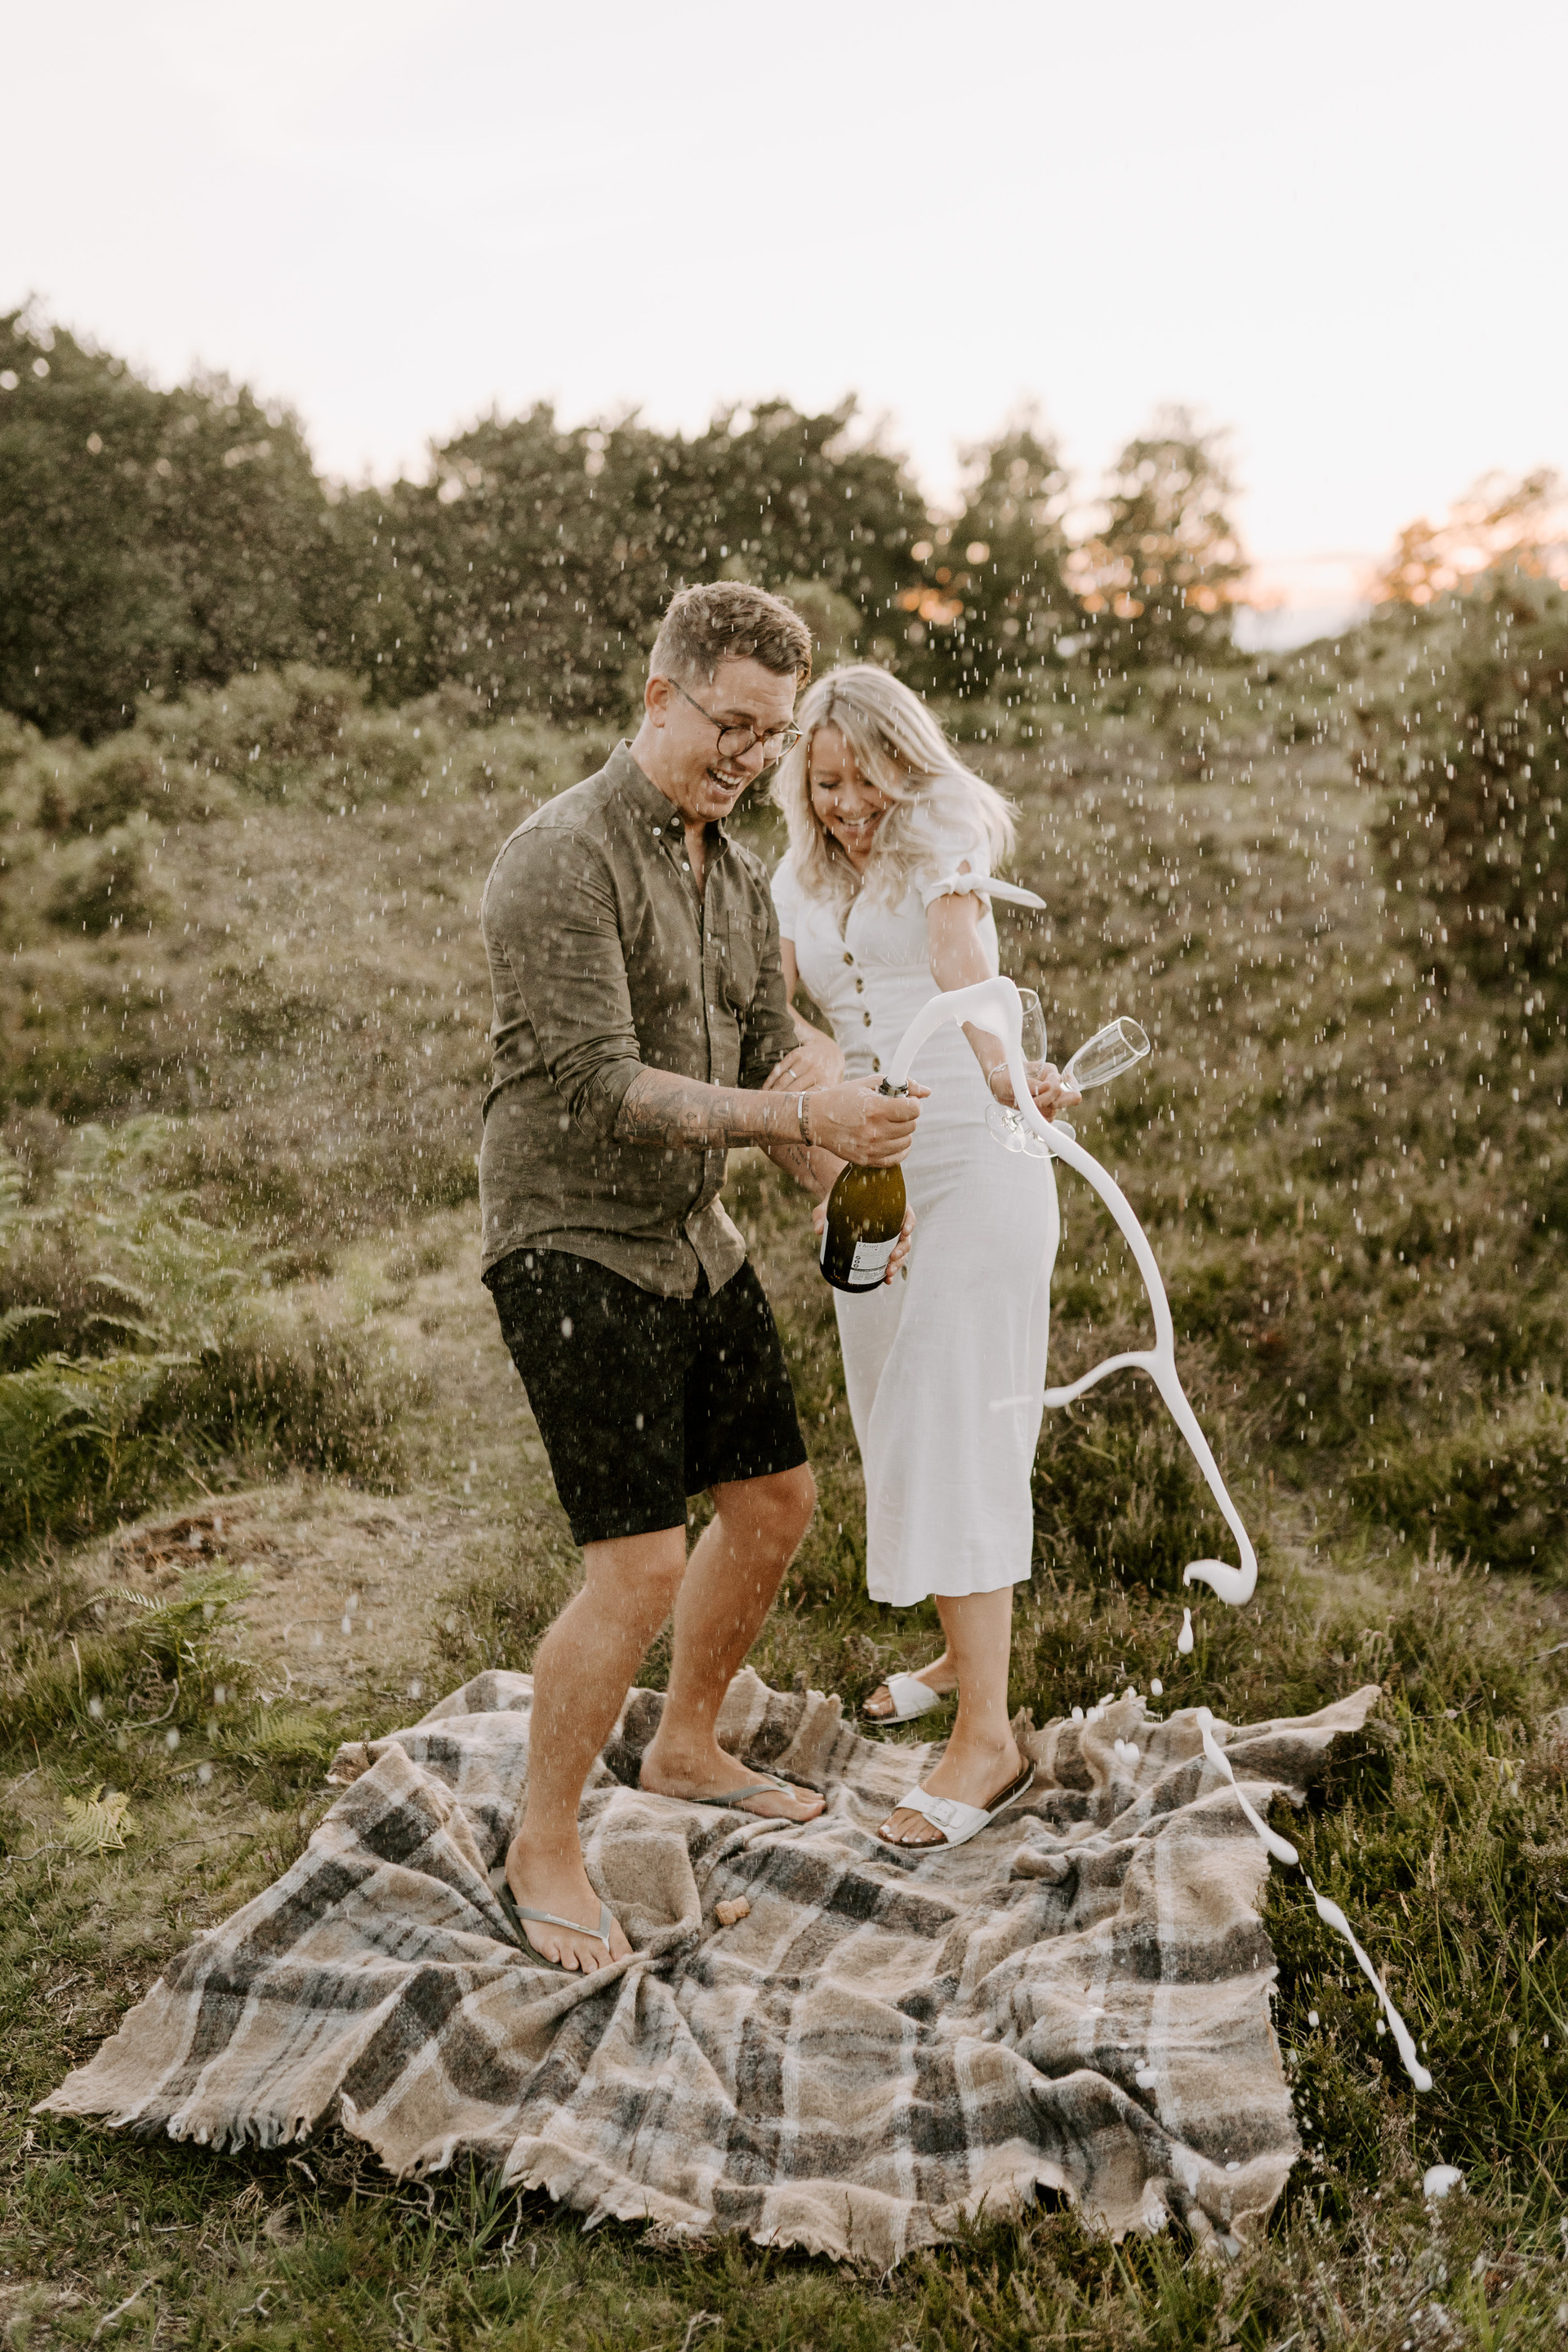 Sian & Mike | Couple Session-226.jpg